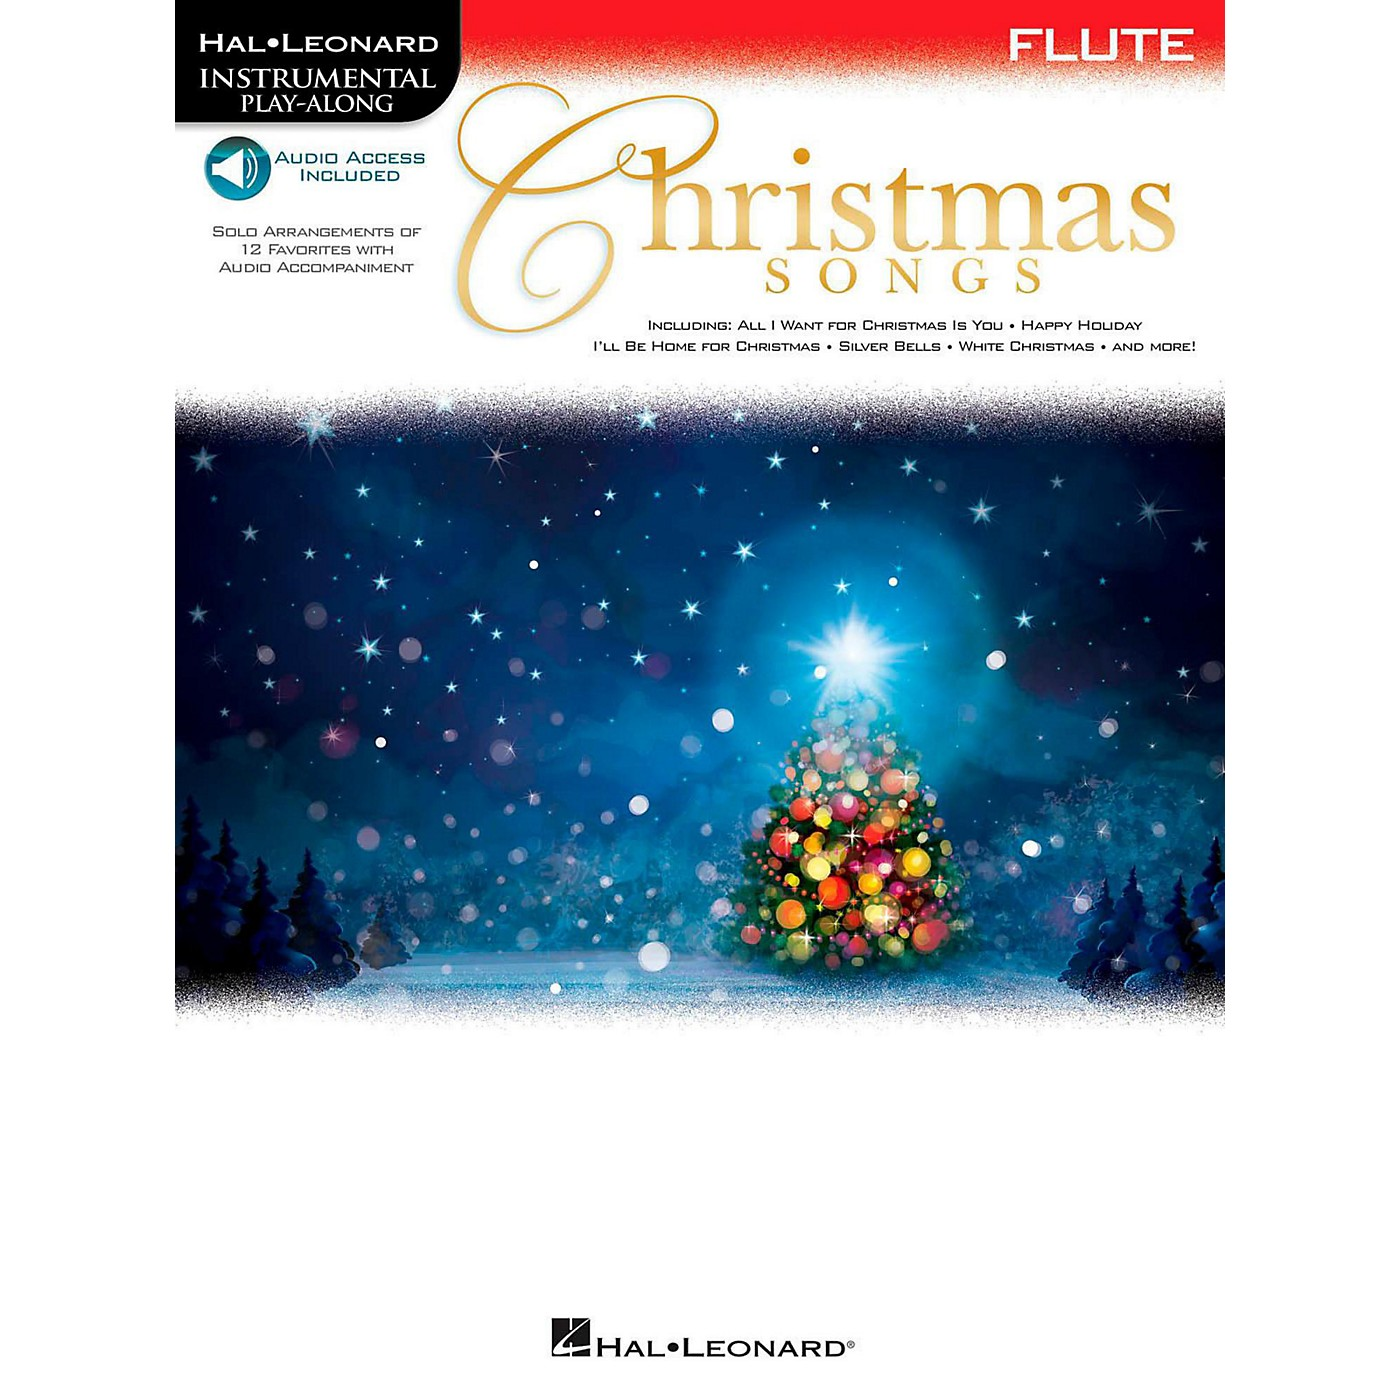 Hal Leonard Christmas Songs For Flute - Instrumental Play-Along (Book/Audio On-Line) thumbnail